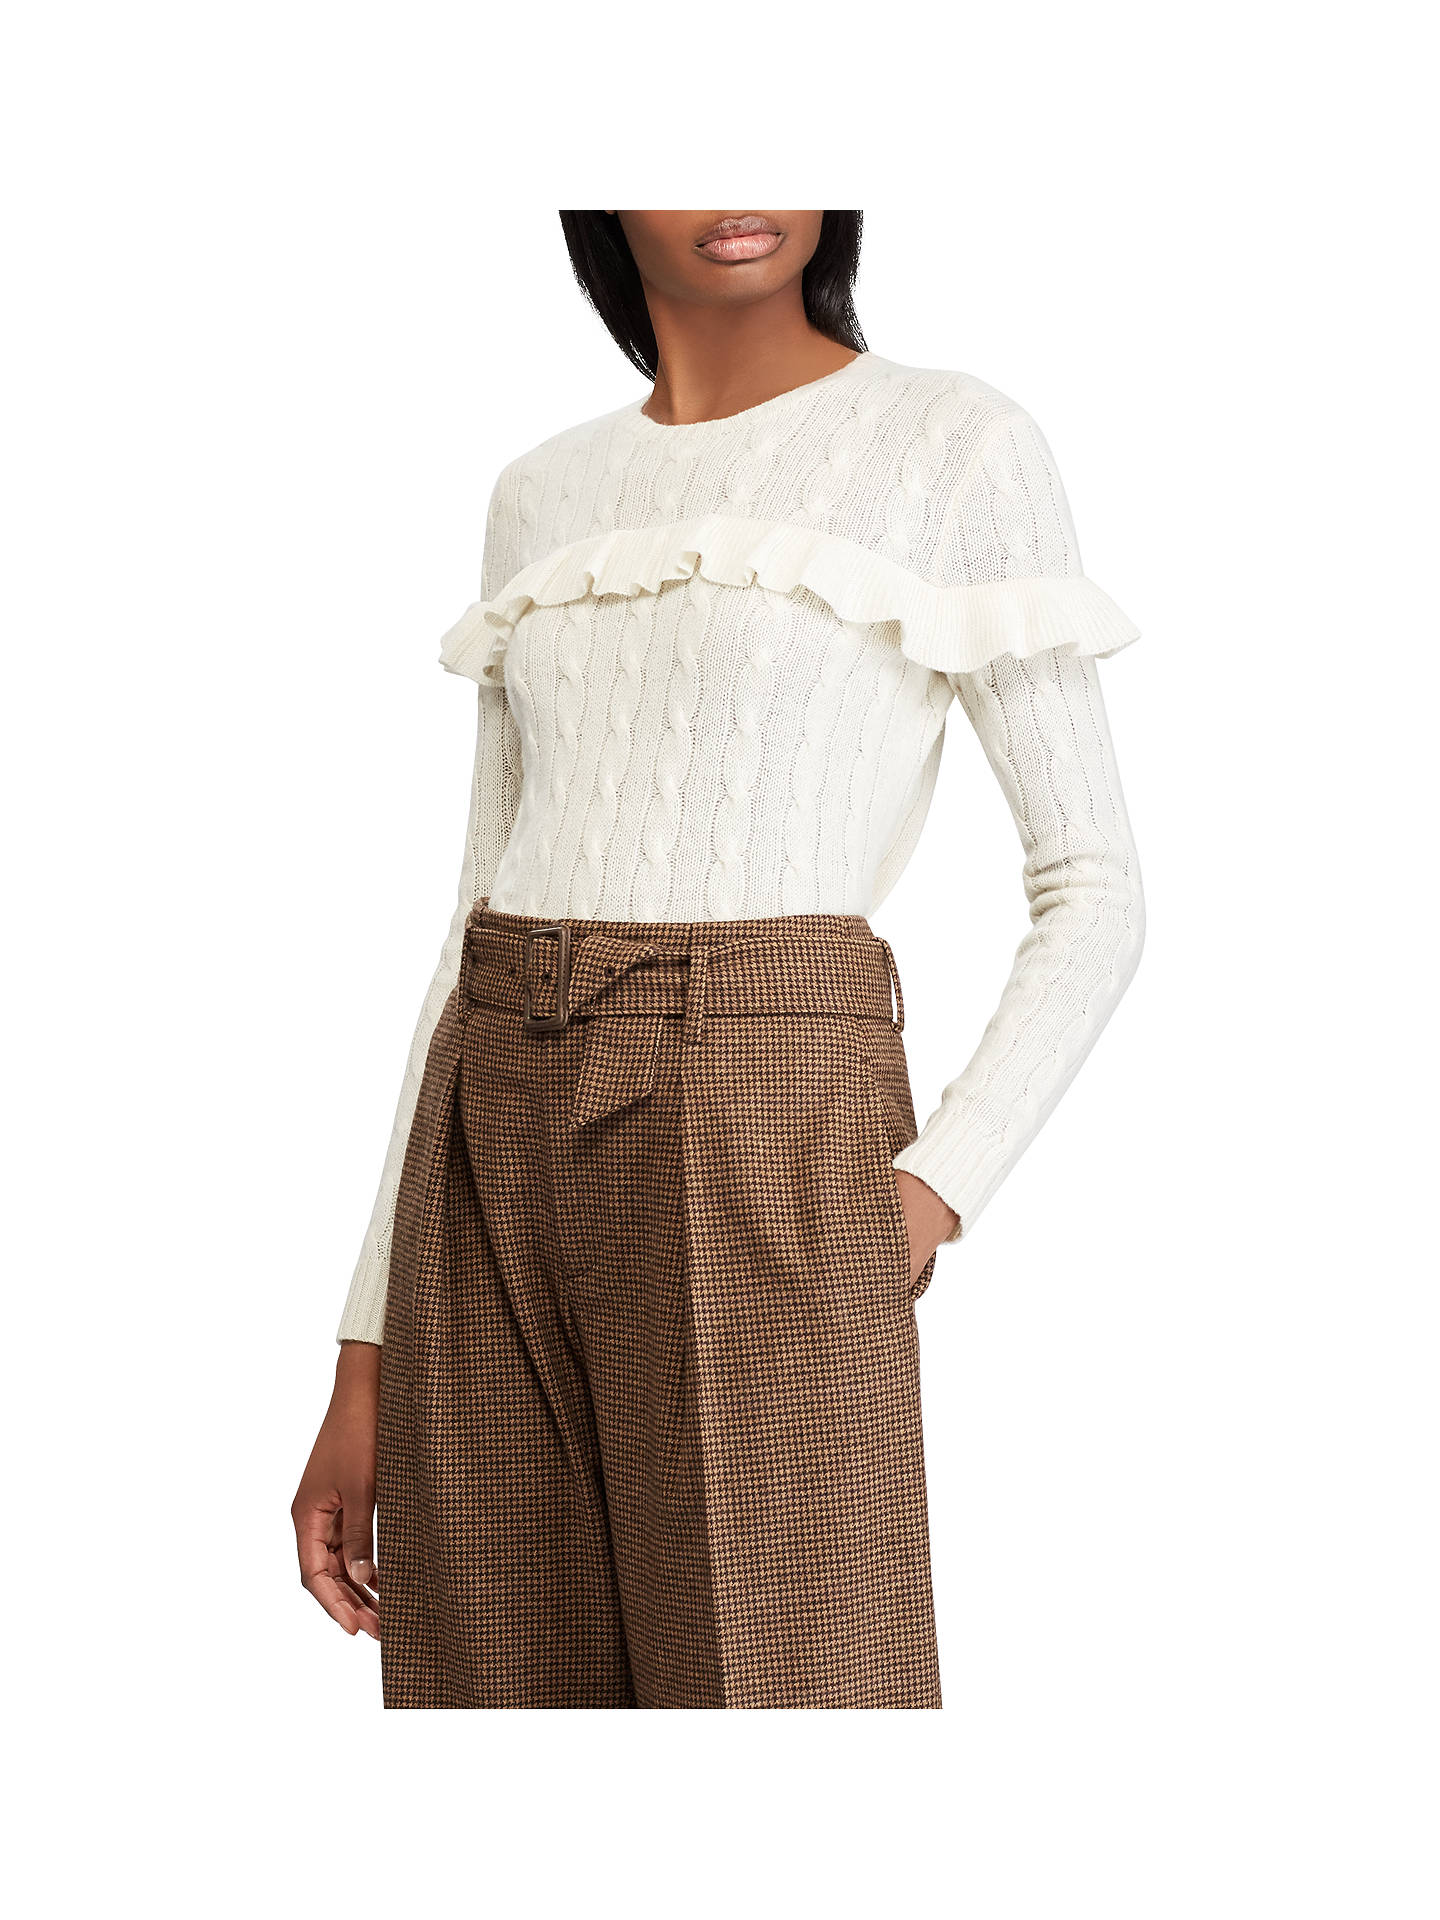 BuyPolo Ralph Lauren Cable Knit Ruffle Jumper, Cream, L Online at johnlewis.com